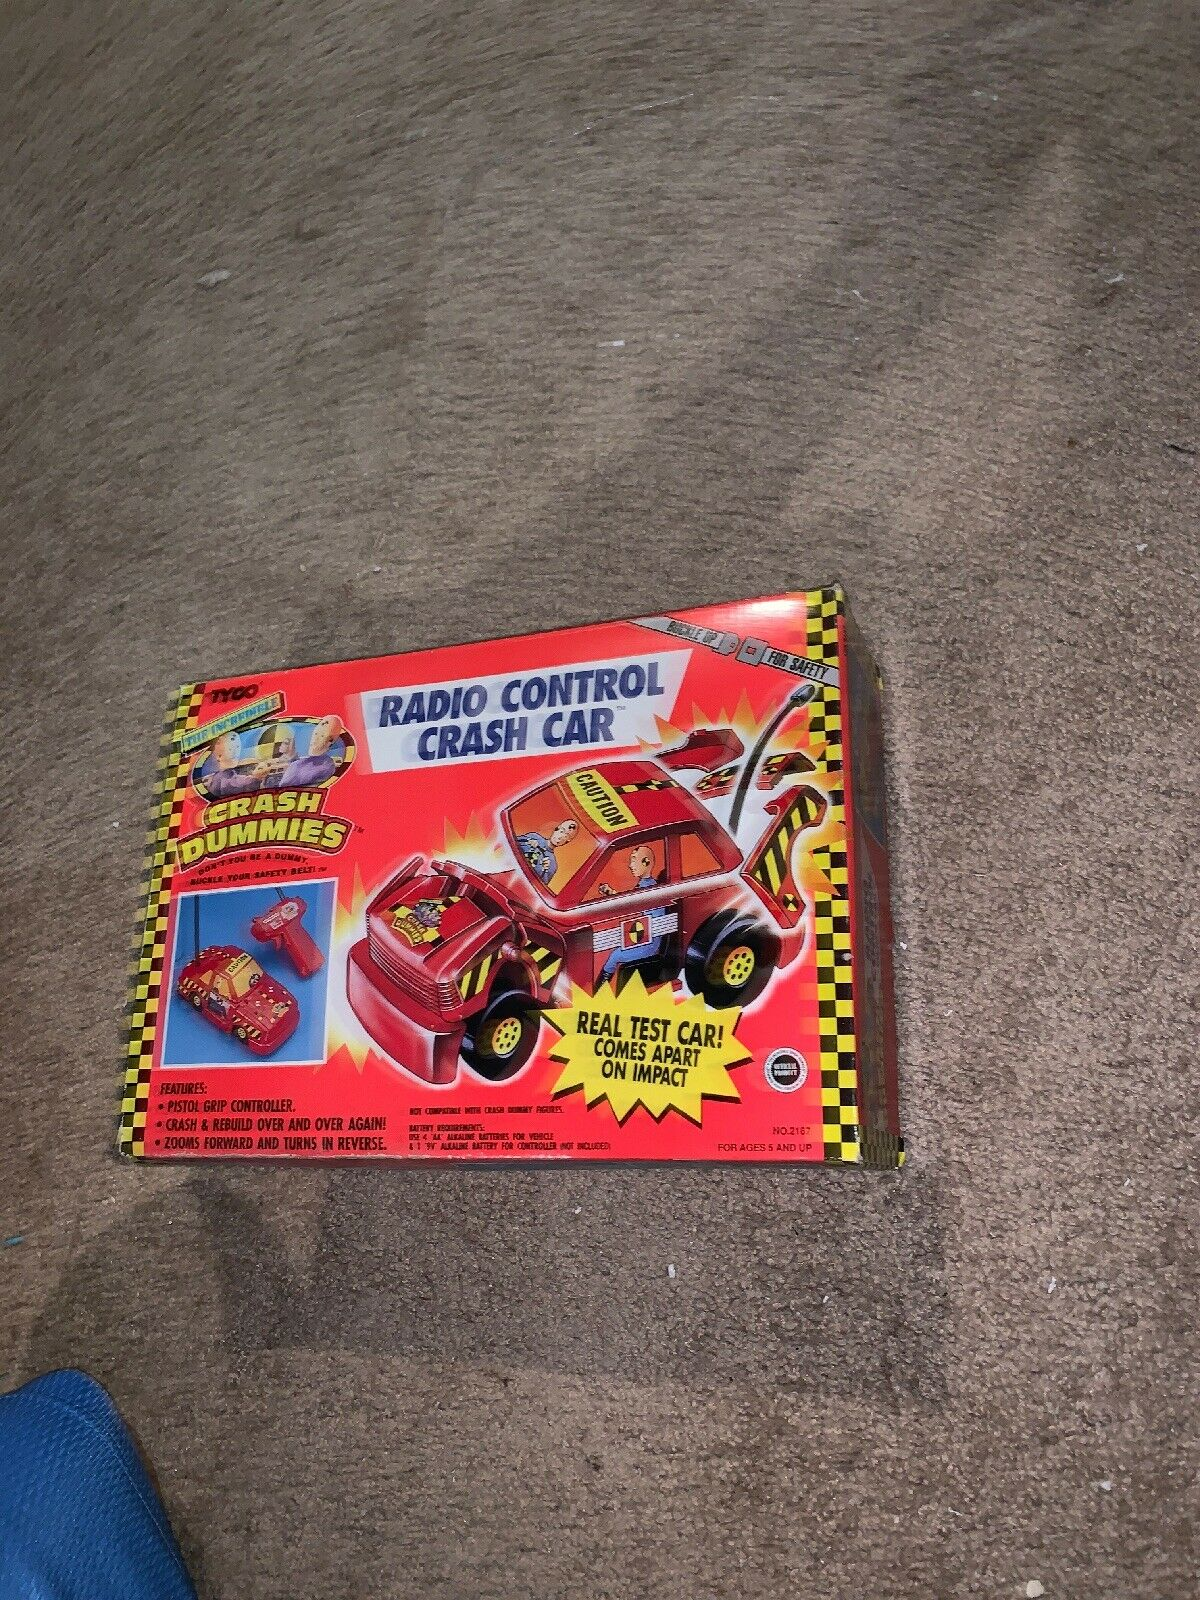 Vintage 1991  Tyco Crash Dummies Radio control Crash voiture  Figure MIB  meilleure réputation